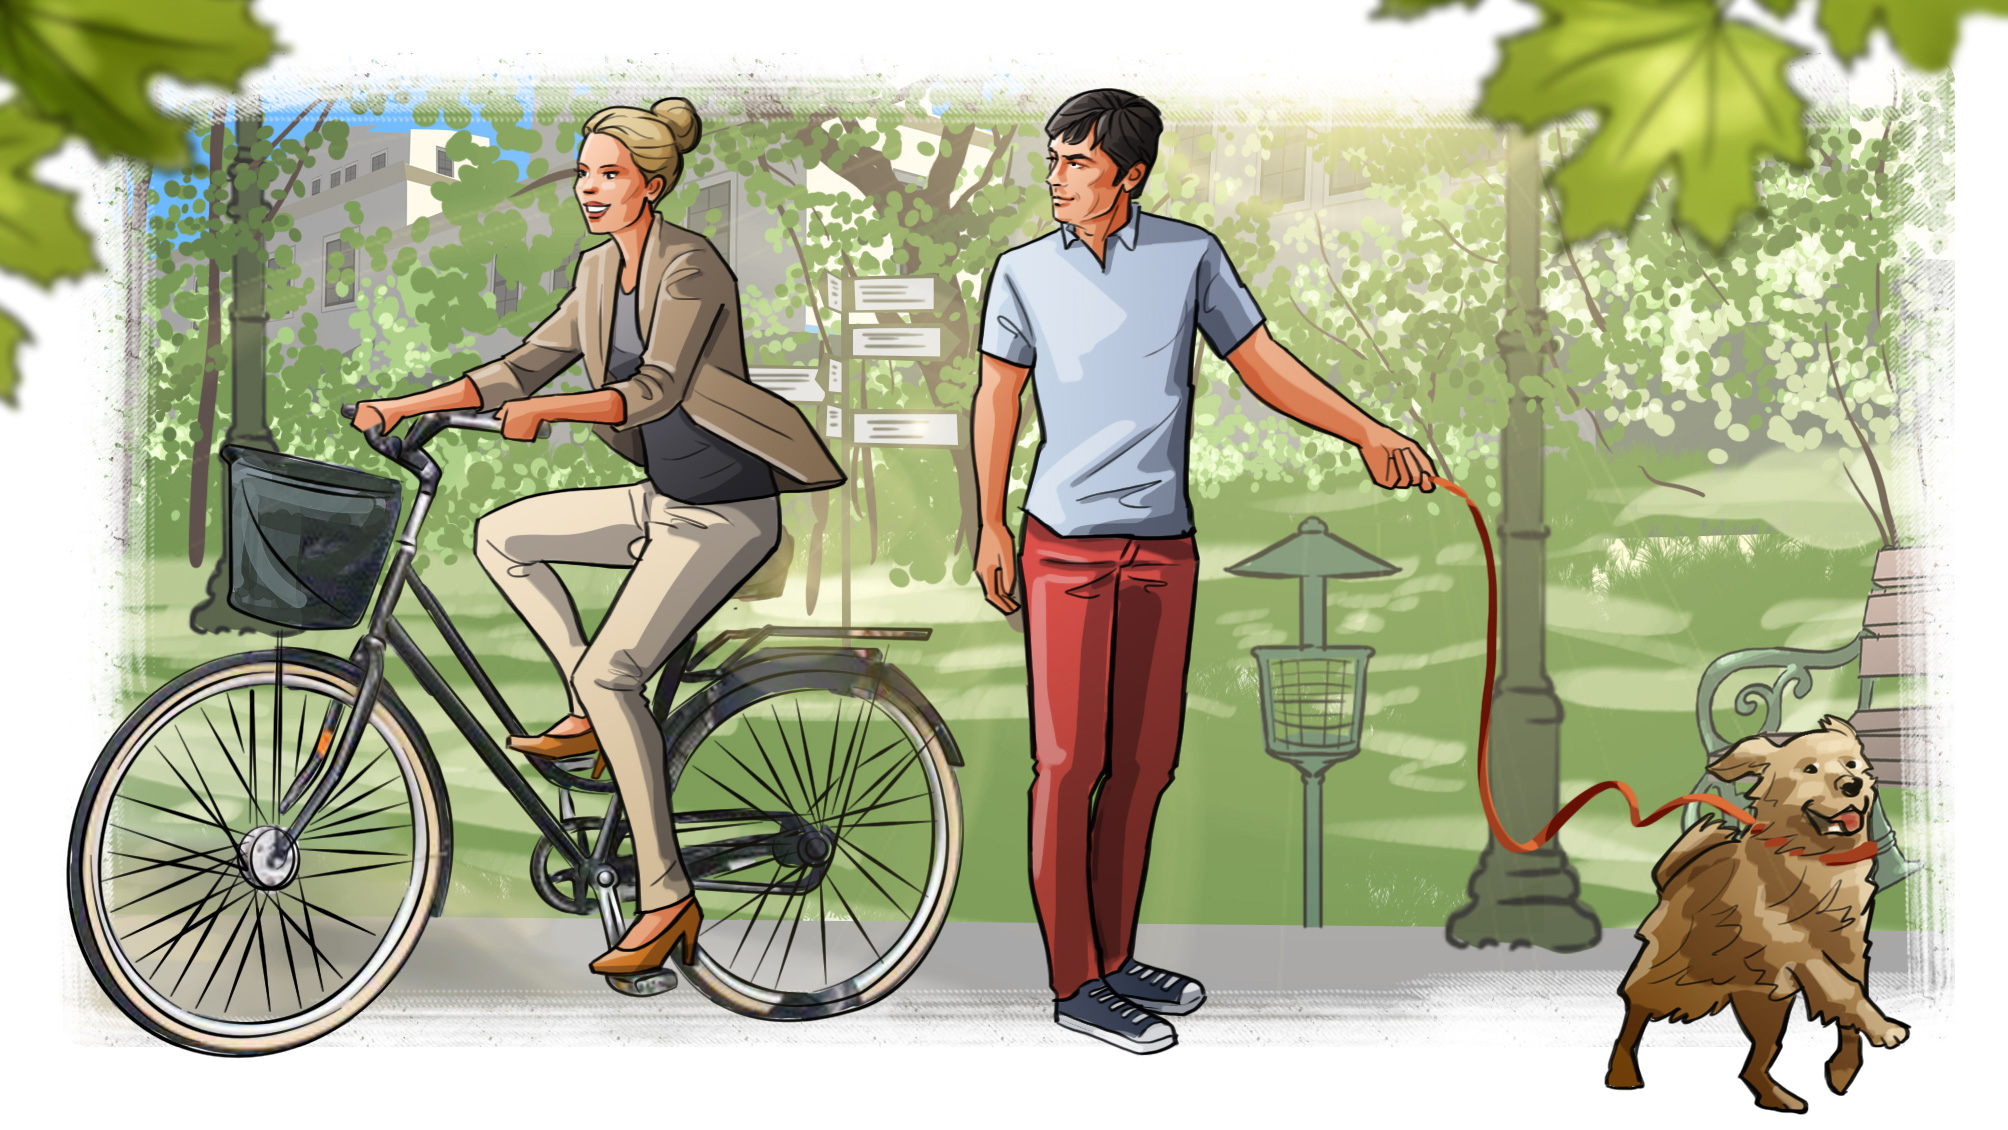 illustration-walk dog bike woman man